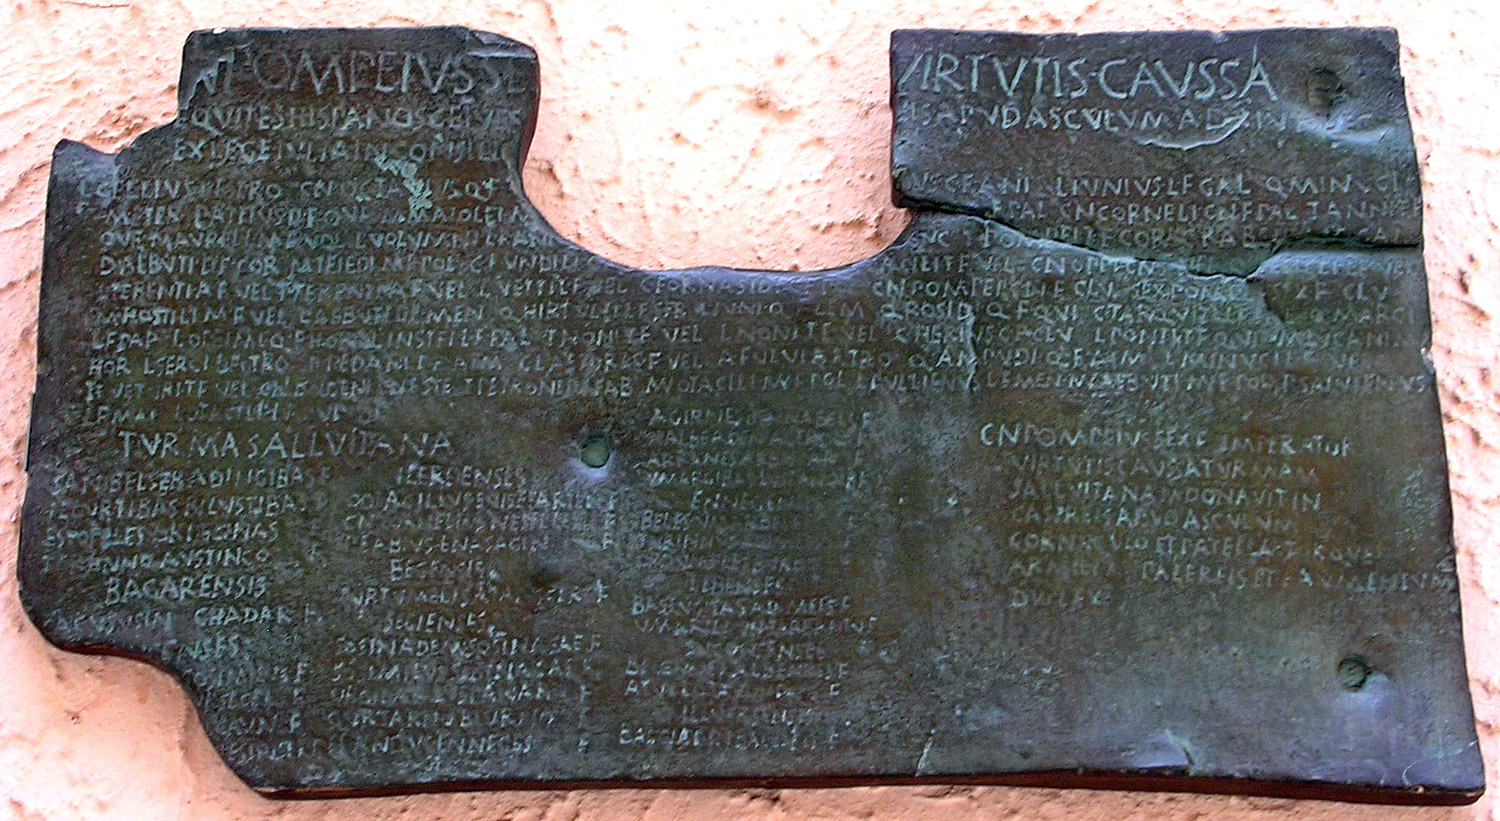 Bronze tablet on which are engraved two decrees by Gnaeus Pompeius Strabo; in the first, Roman citizenship is granted to several Iberian equestrians. 89 BCE (or a copy from the reign of Vespasian, 69—79 CE). Copy. CIL I2 709 = CIL VI 37045 = ILS 8888. Inv. No. MCR 149. Rome, Museum of Roman Civilization